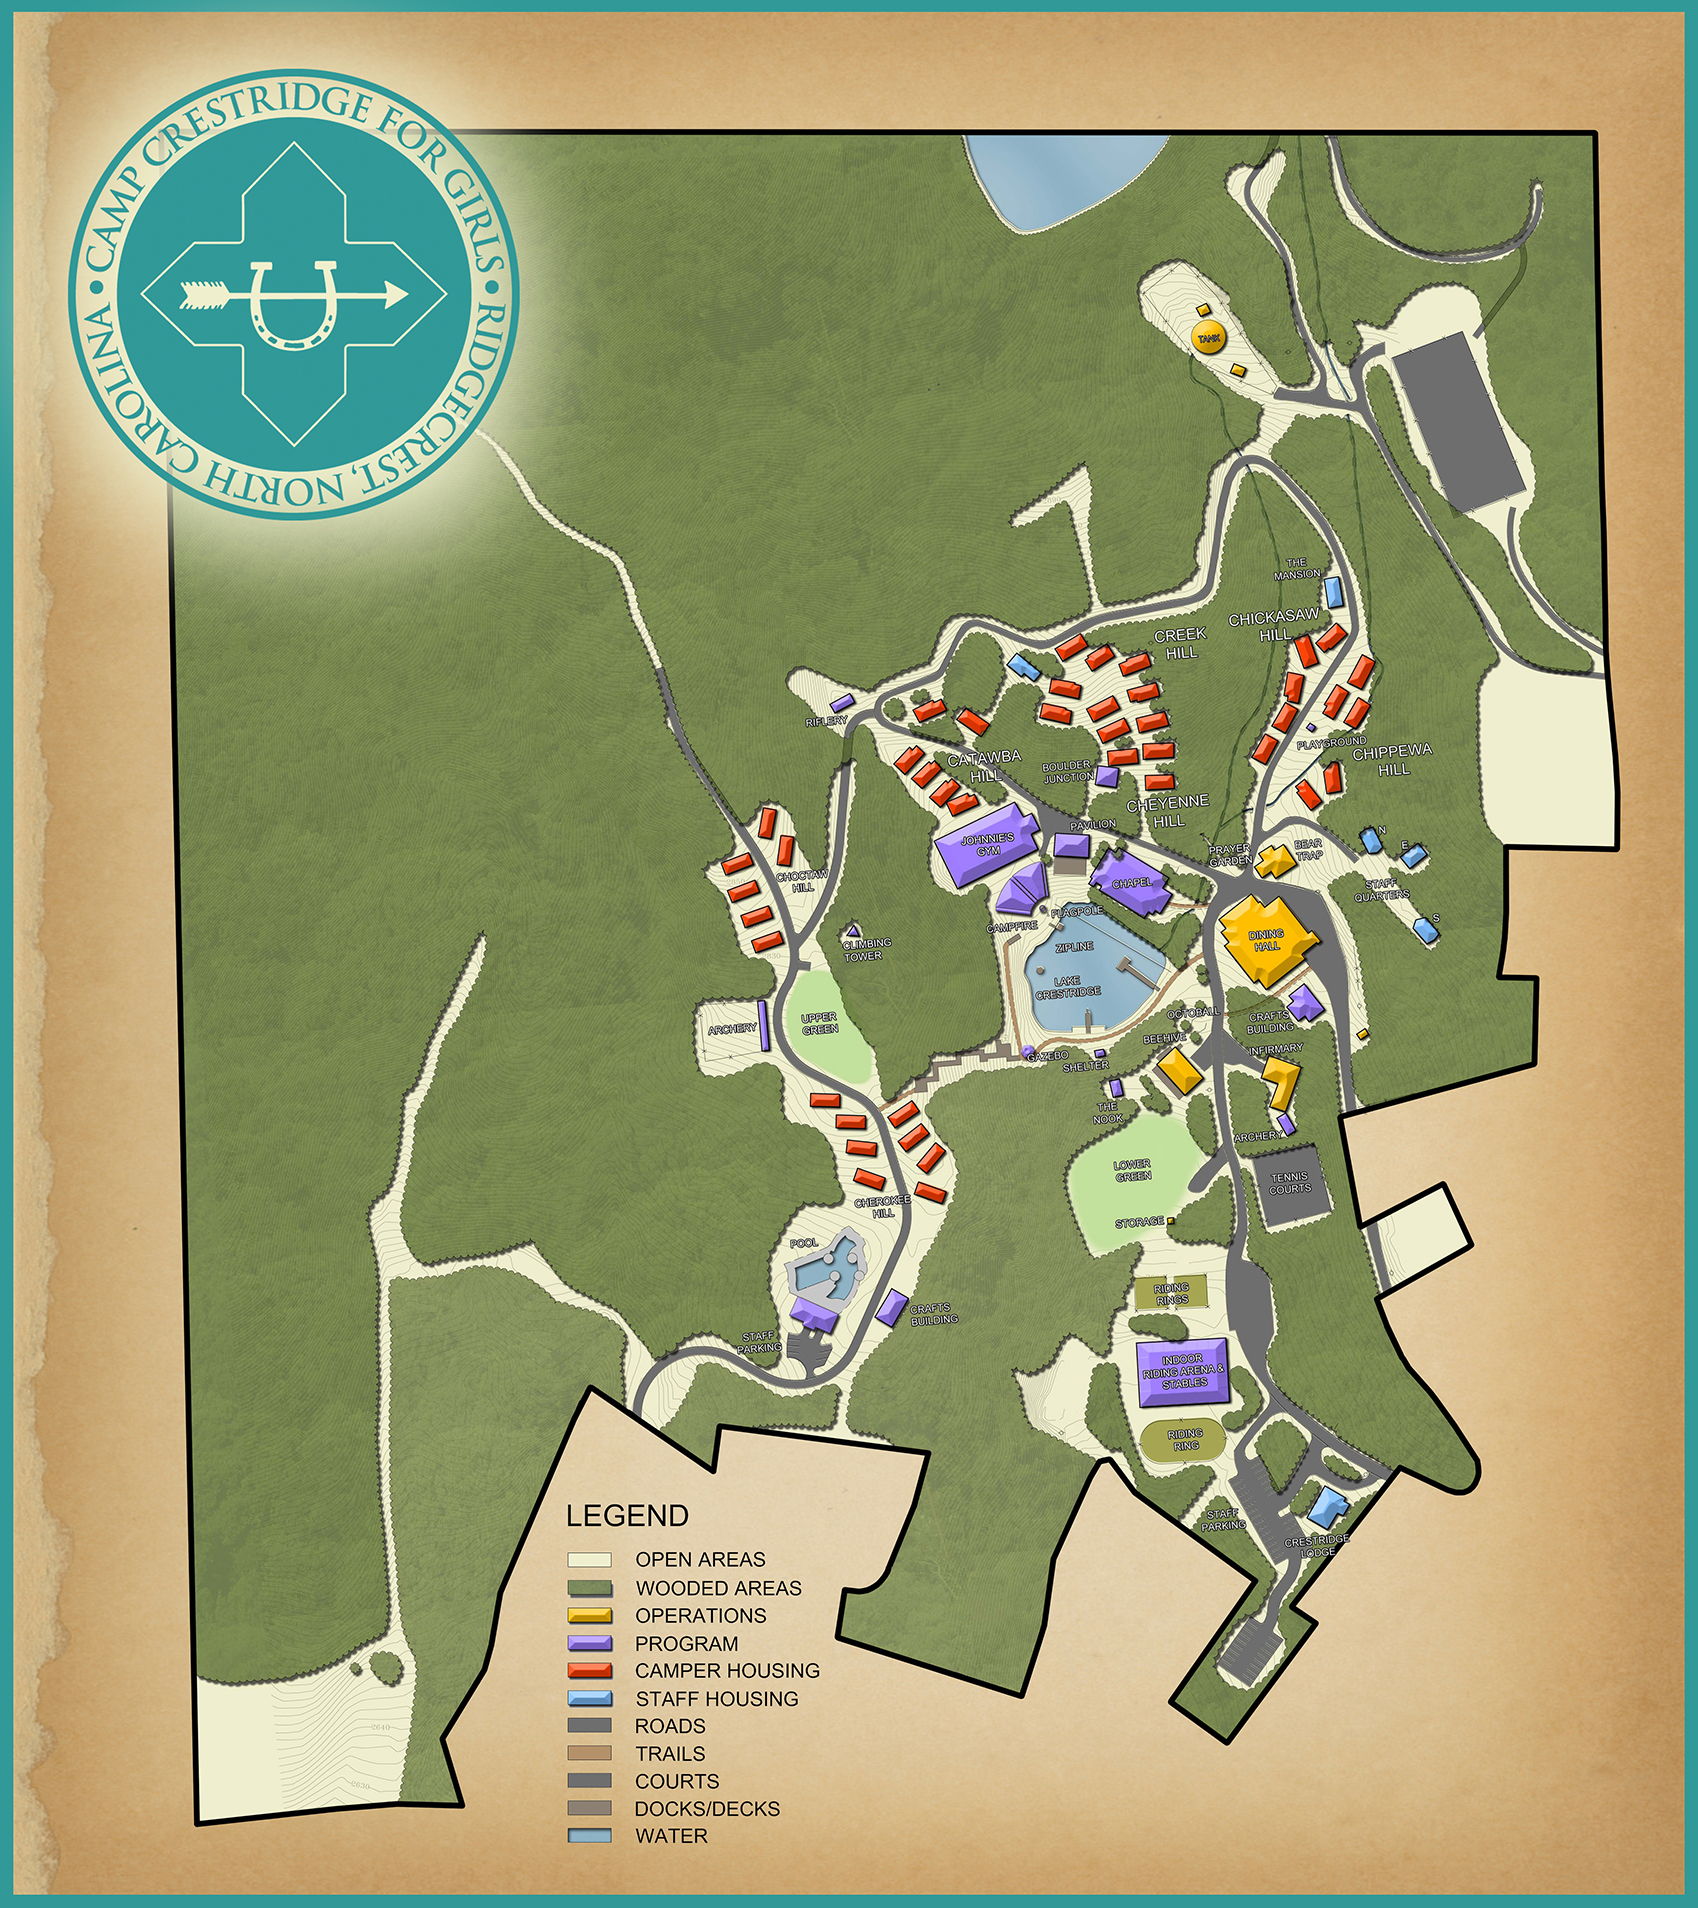 Camp Crestridge Map